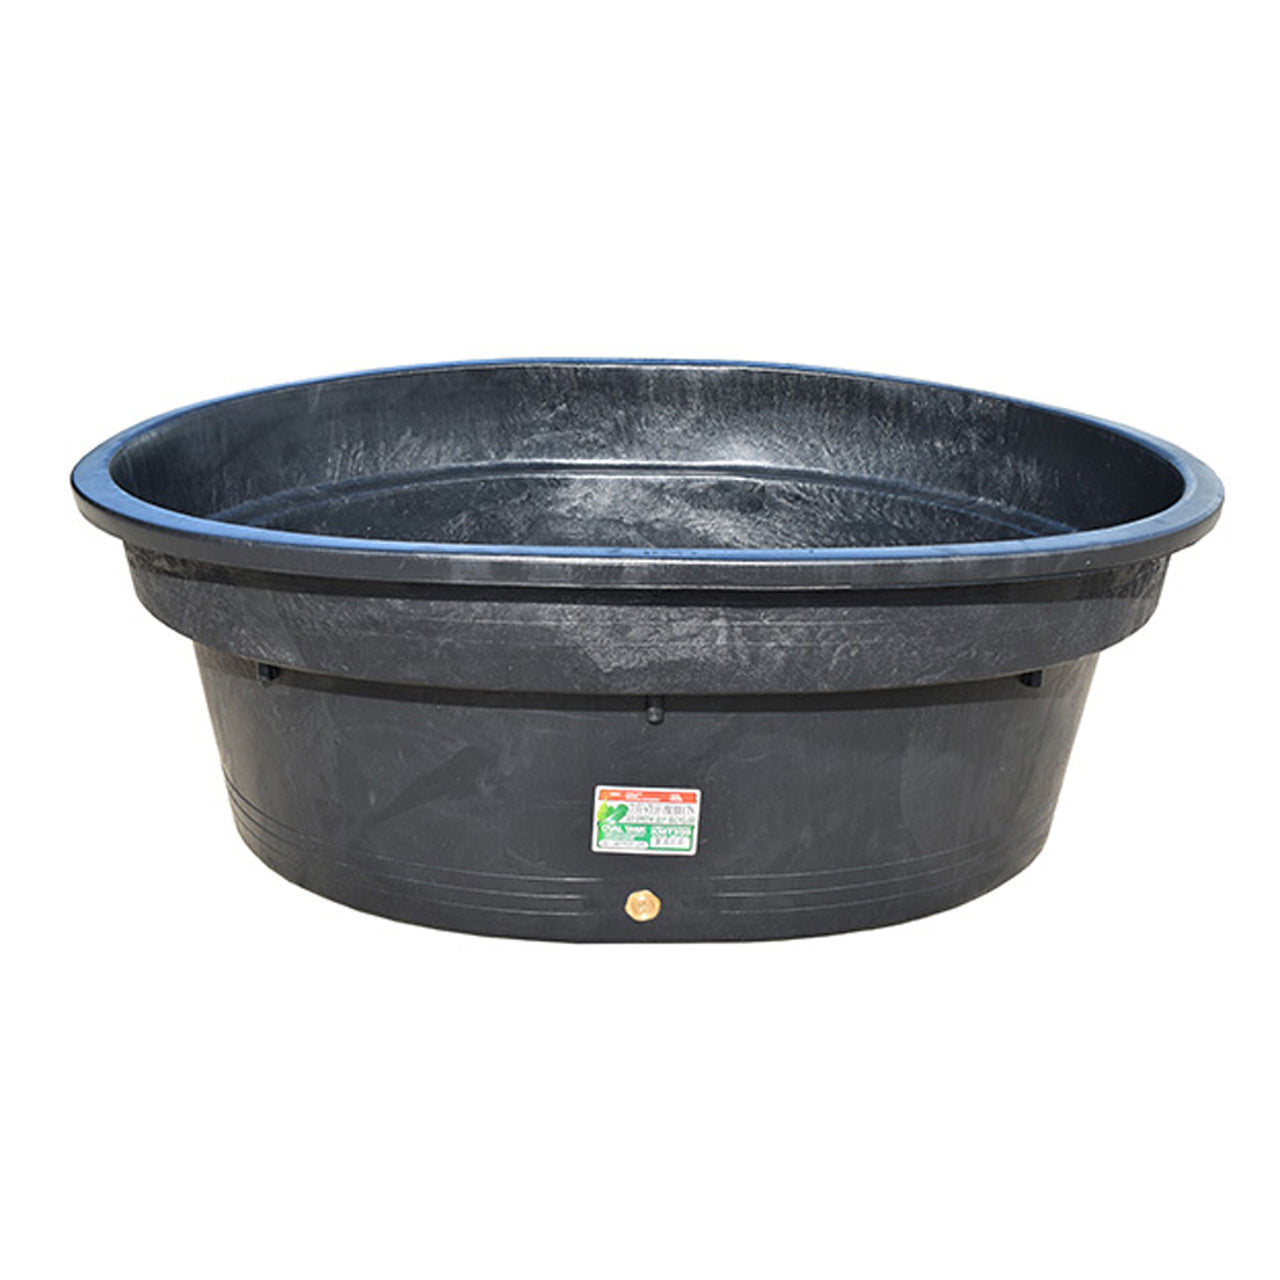 Tuff Stuff Oval Tank With Plug 85 Gal - Tanks Drums Tuff Stuff - Canada